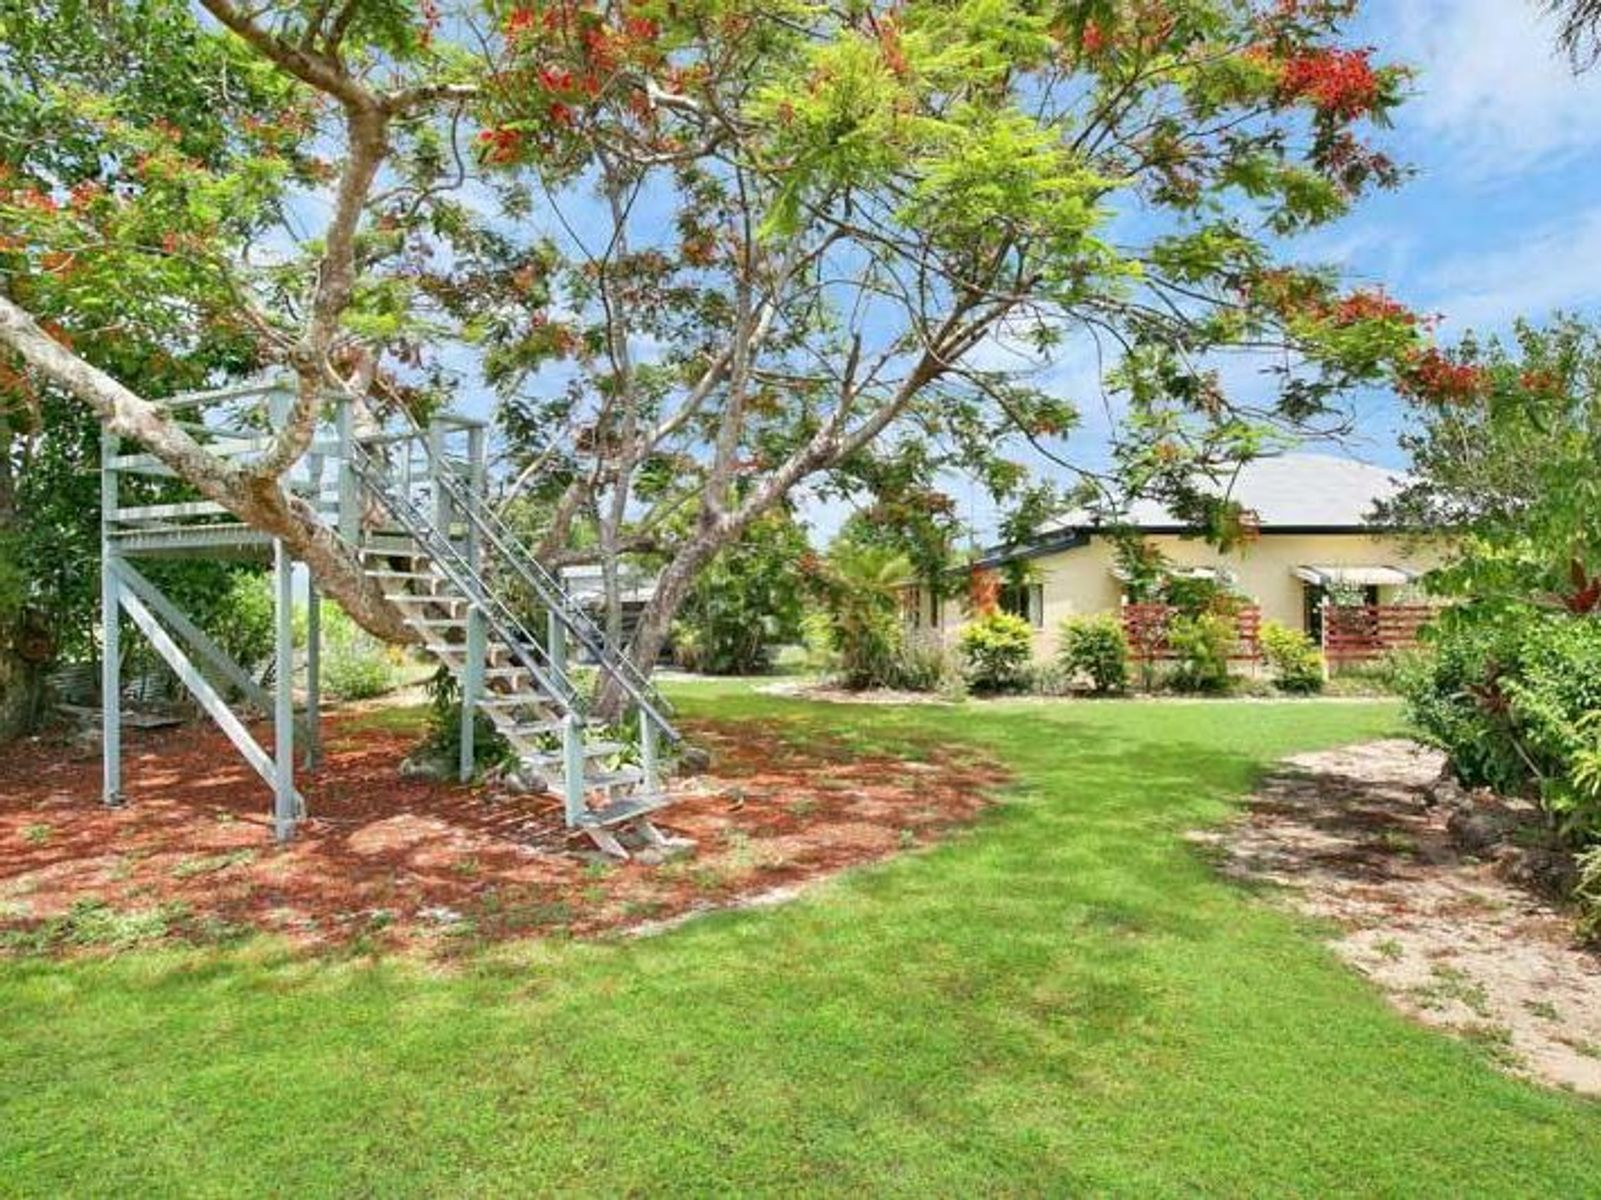 336 HARBOUR RD MOURILYAN QLD 4858, Mourilyan Harbour, QLD 4858